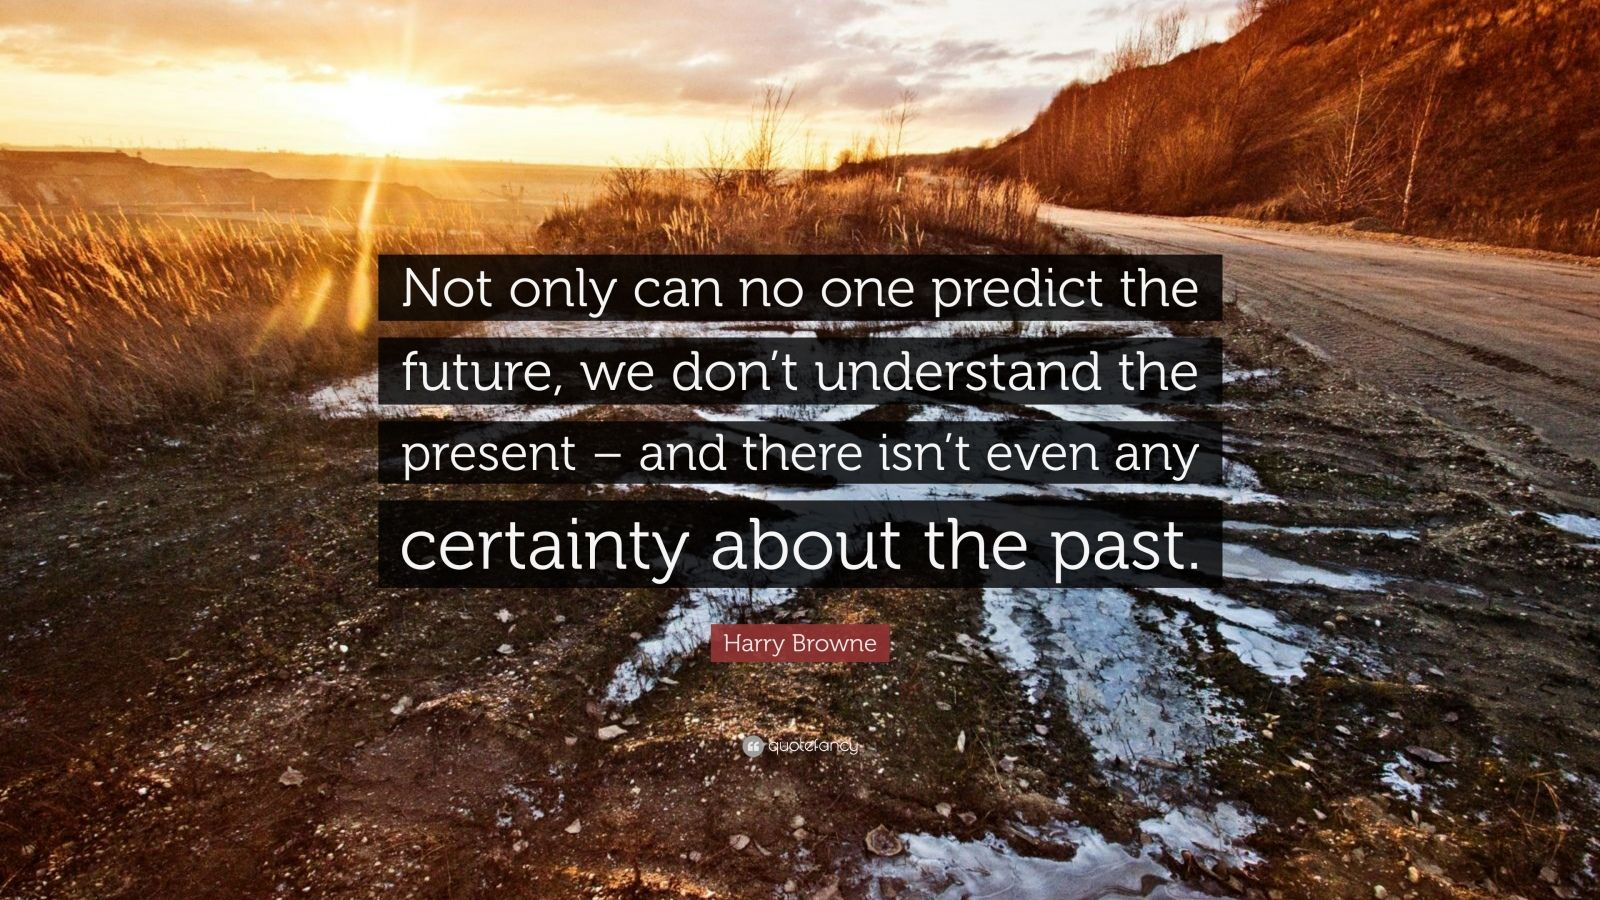 """Harry Browne Quote: """"Not only can no one predict the future, we don't understand the present – and there isn't even any certainty about the past."""""""